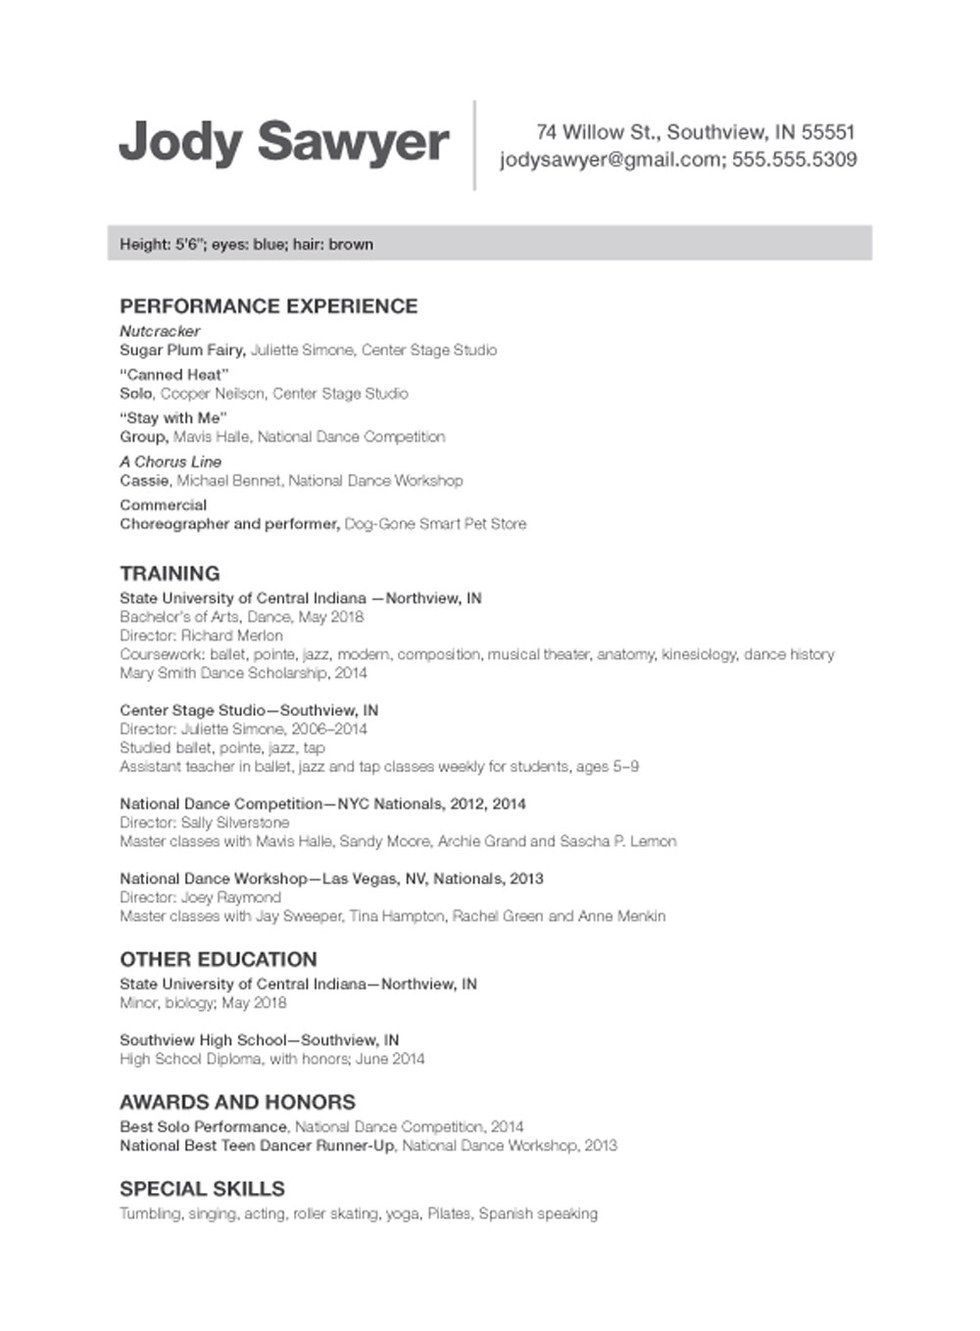 Sample dance resume cover letter examples actor audition beginner sample dance resume cover letter examples actor audition beginner actors template acting spiritdancerdesigns Choice Image